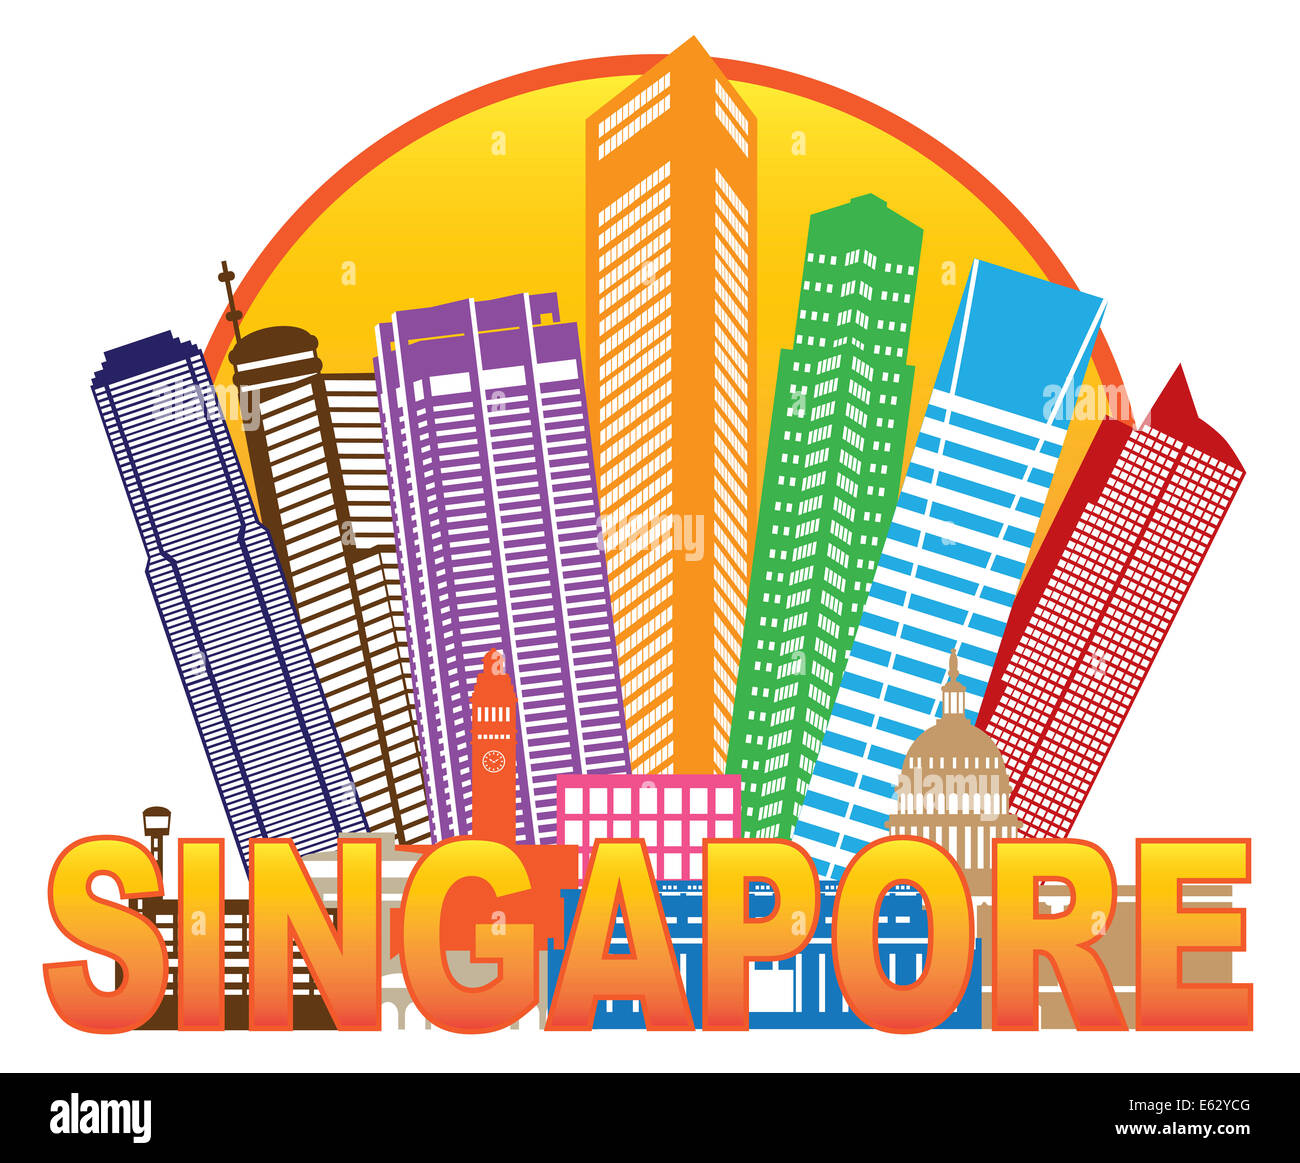 Singapore City Skyline Silhouette Outline in Circle Color Isolated on White Background Illustration - Stock Image